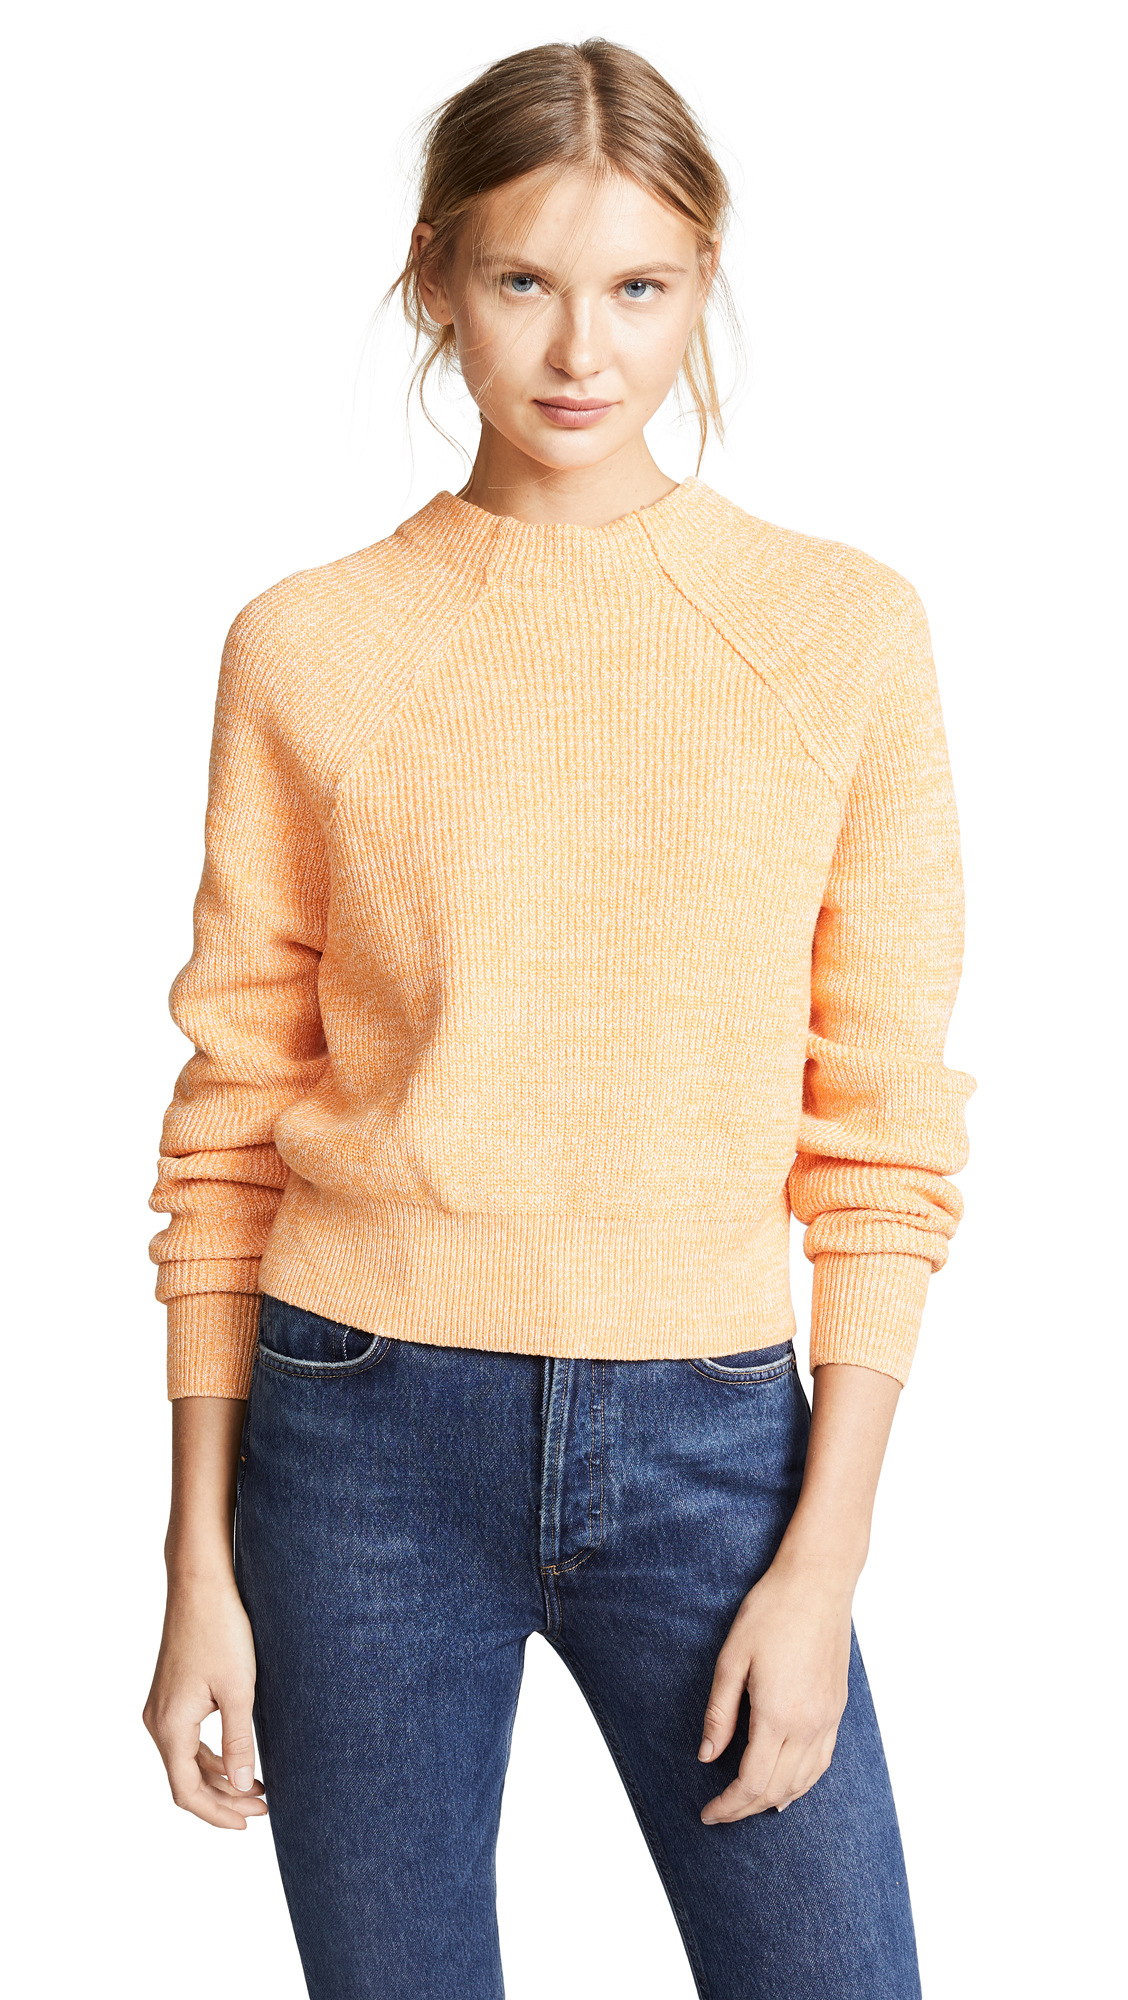 Free People Too Good Pullover - Orange